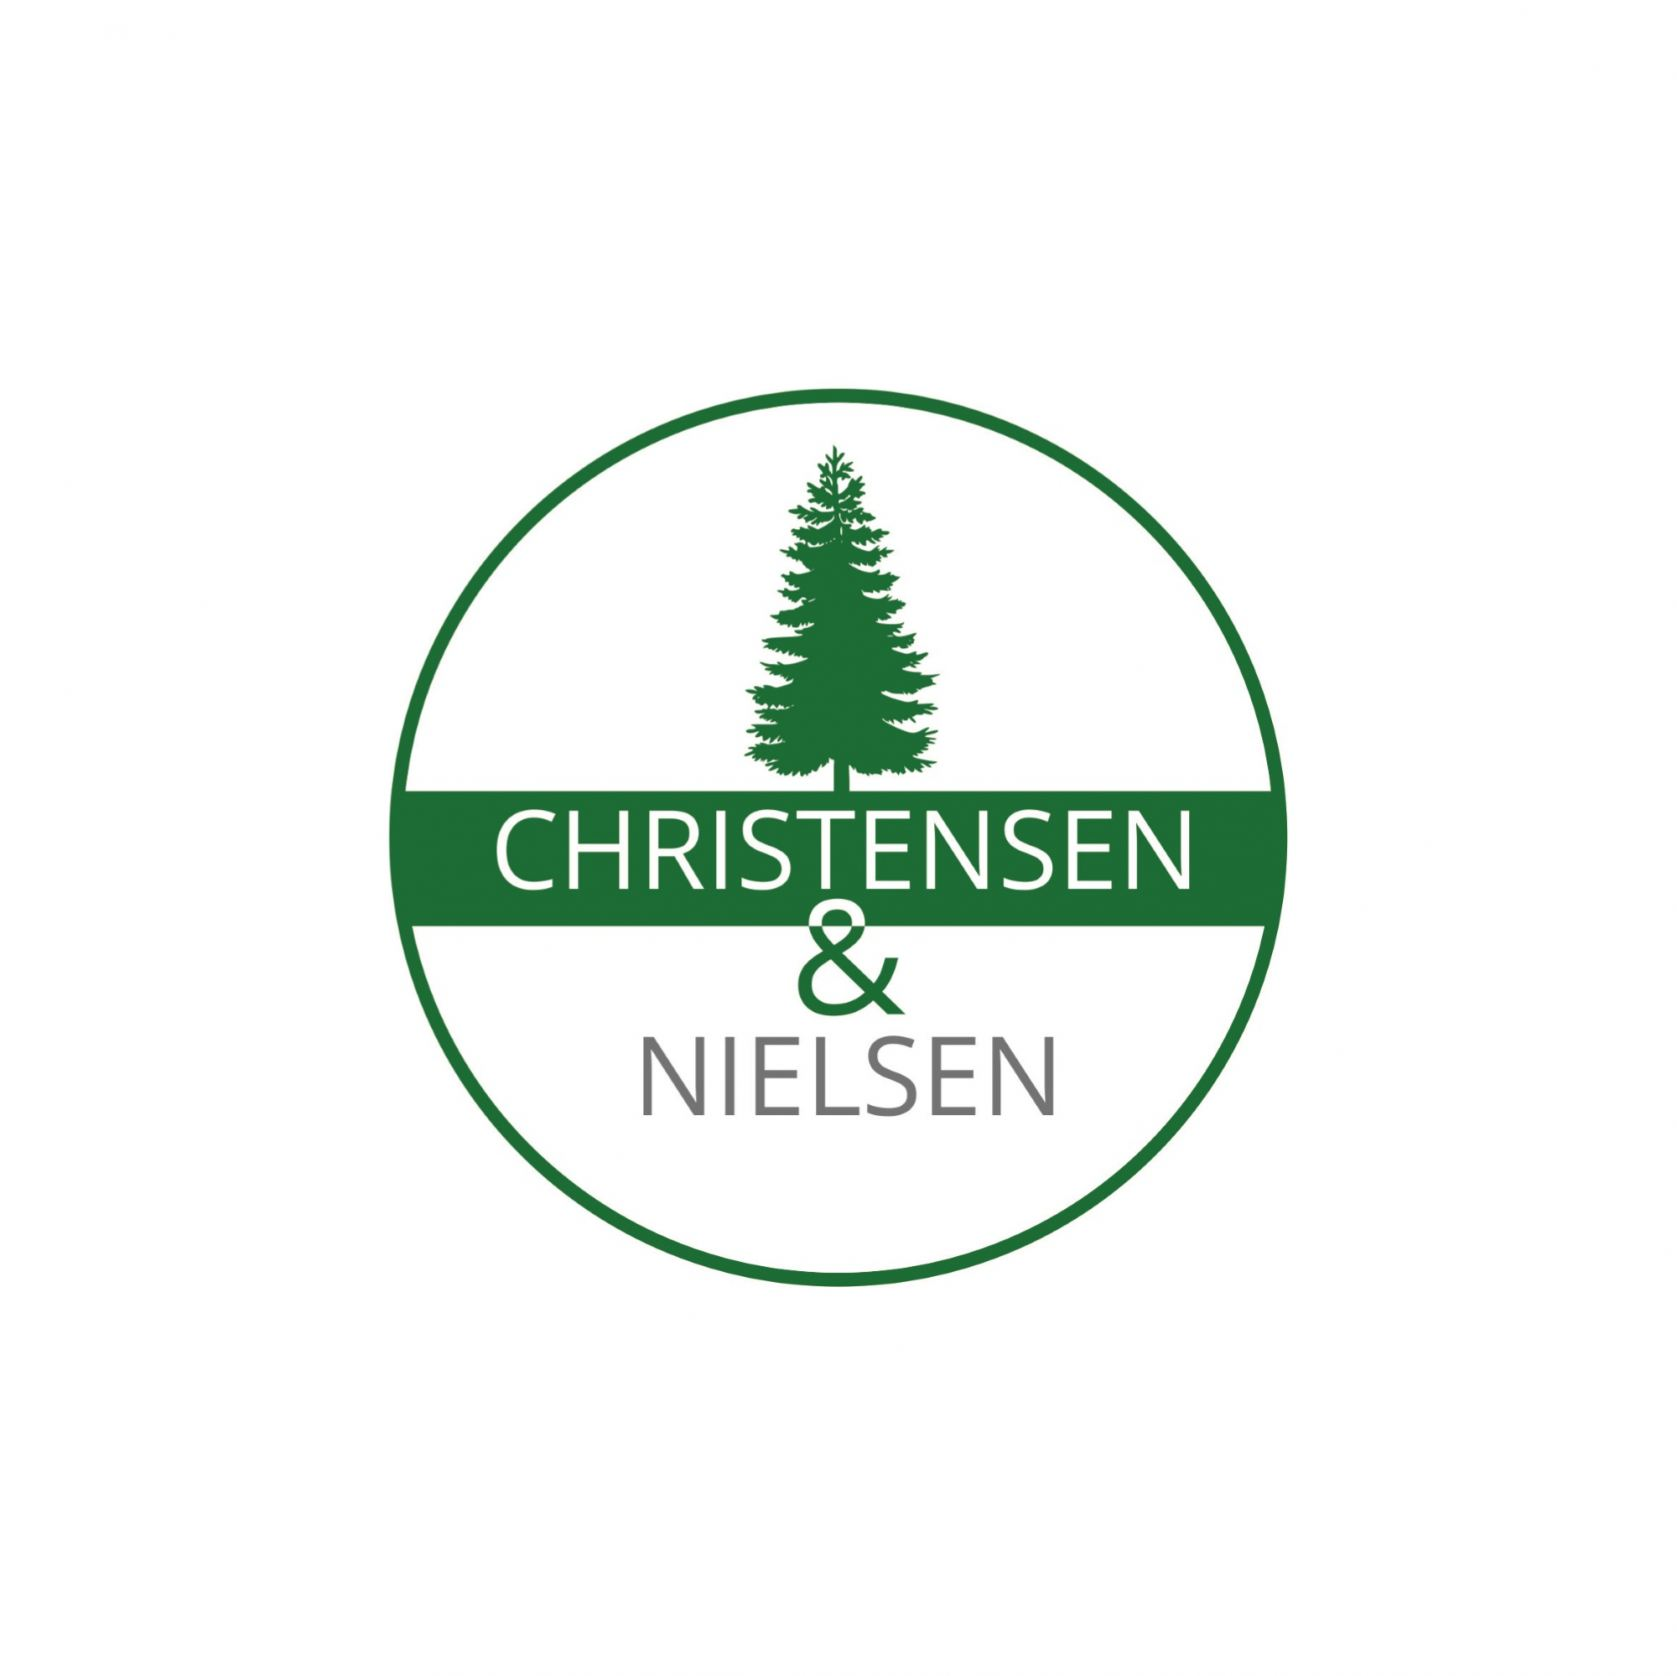 Christensen and Nielsen Trading Co., LLC